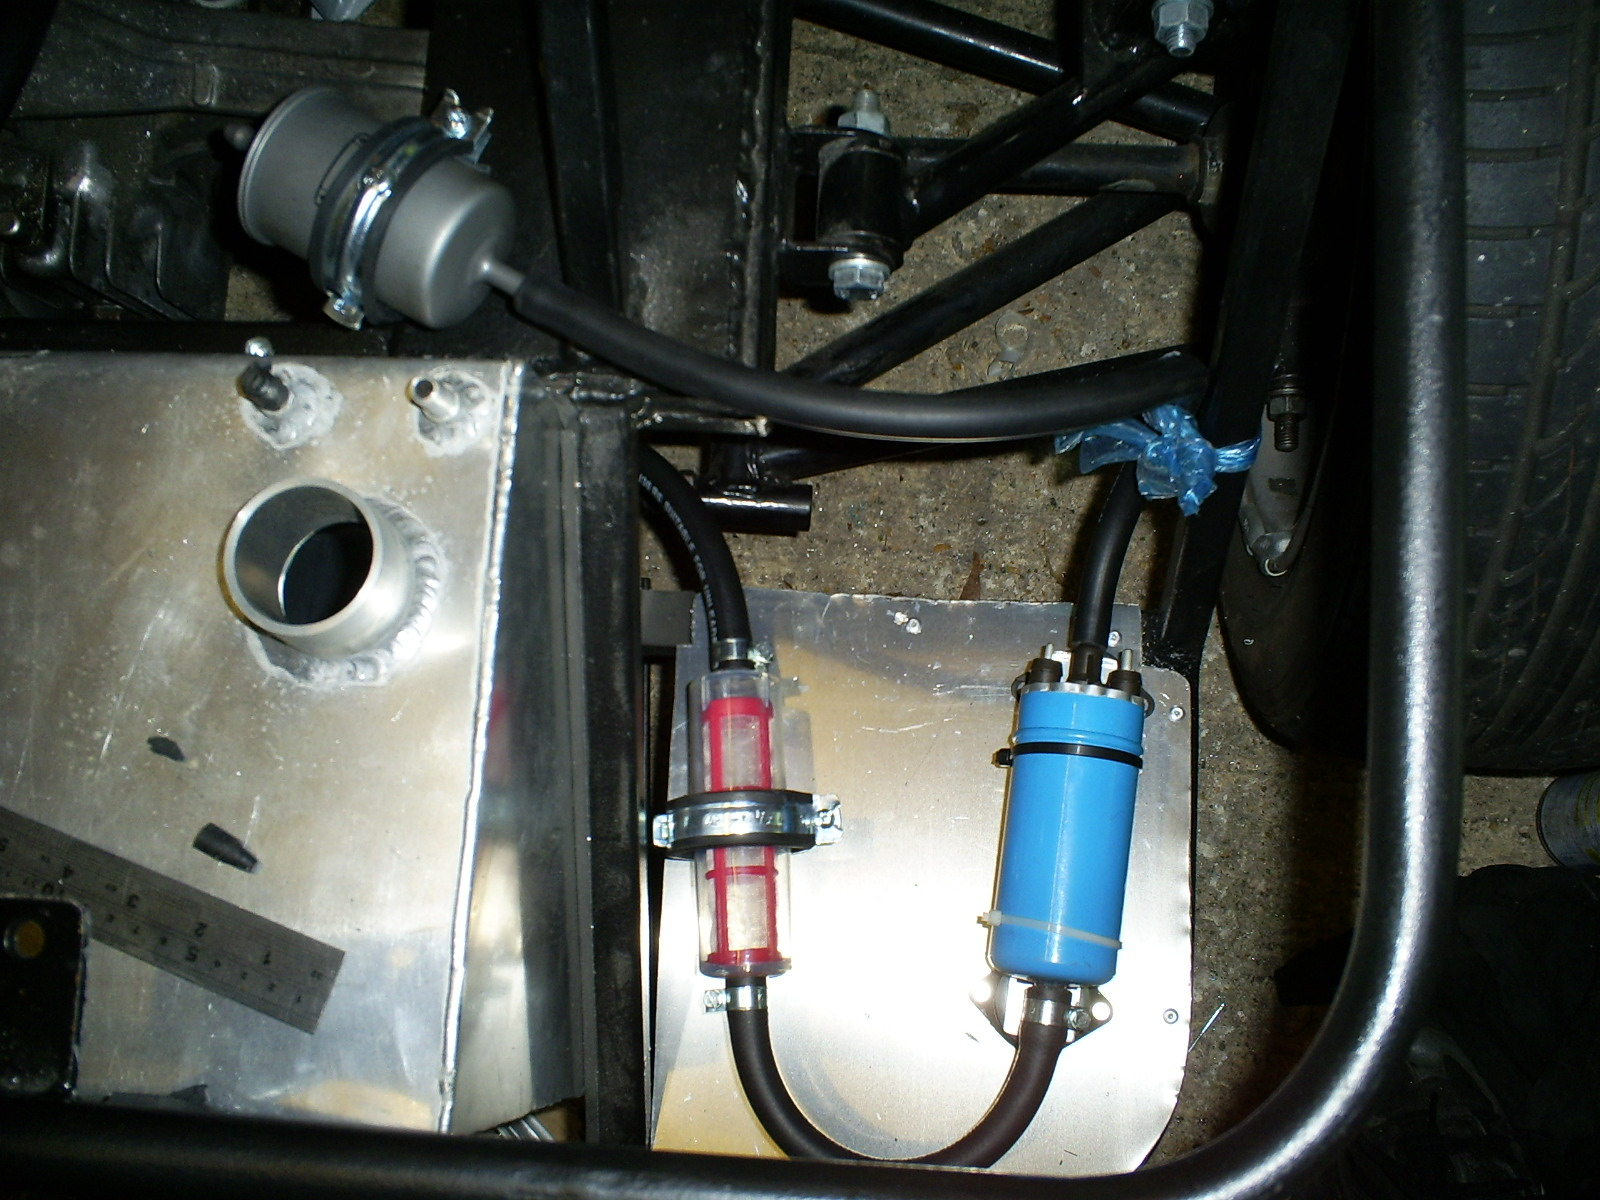 Mx5 Haynes Roadster Fuel Pump And Filters Filter The Pre Is A Mesh Type To Catch Any Swarf From My Tank Main Tkf516 Used On Loads Of Cars 09l Cinquecento 42l A6